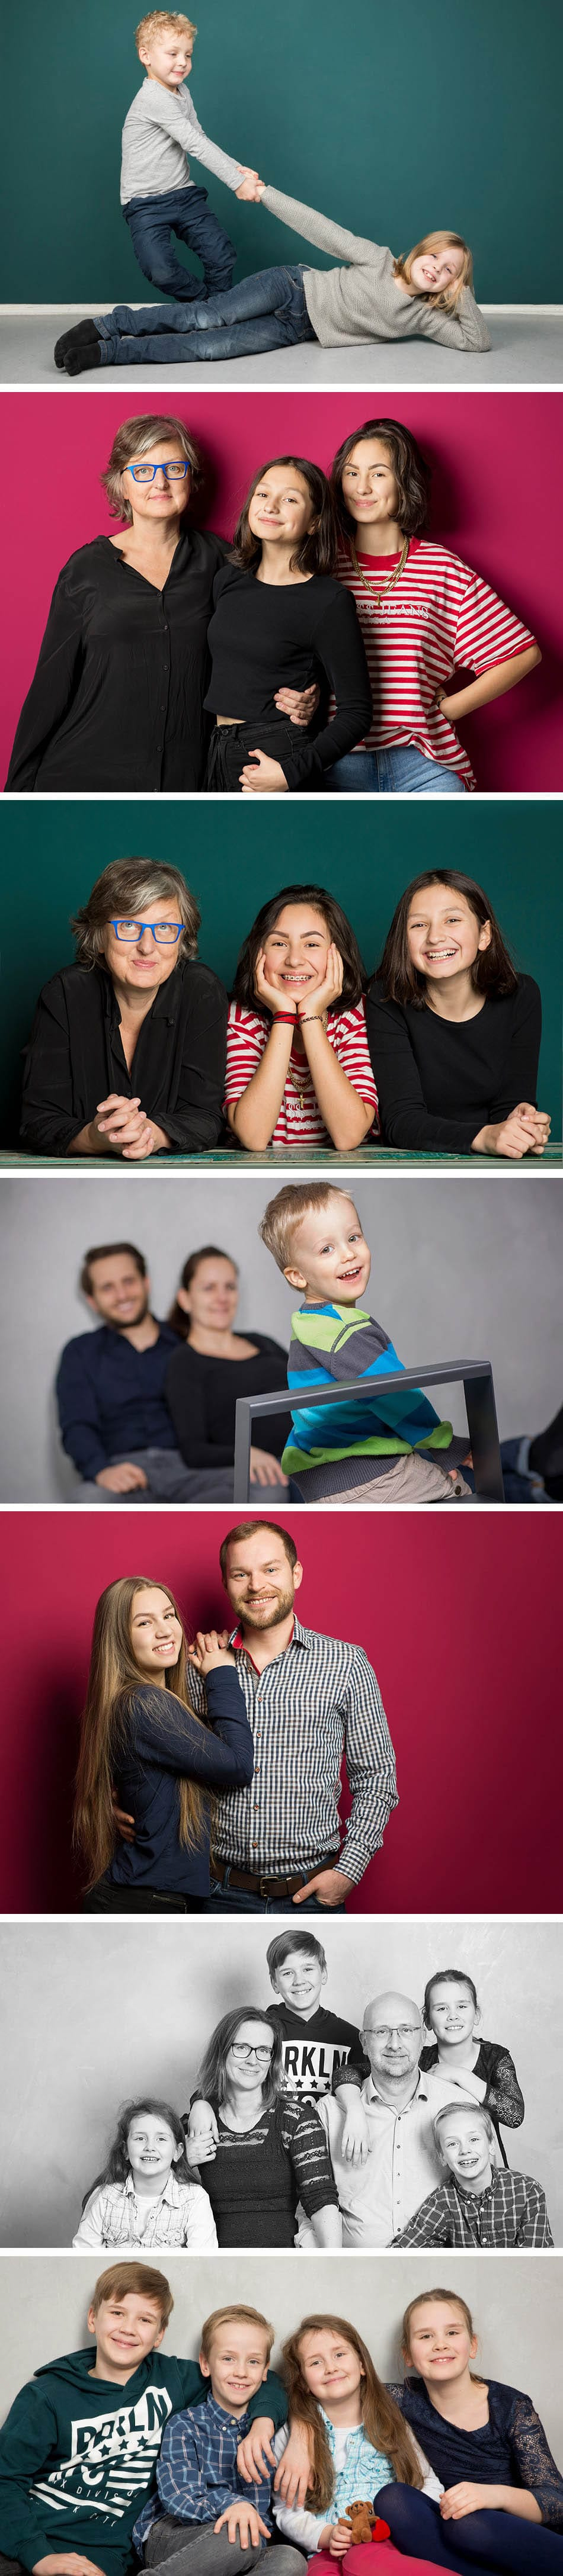 Familienfotoshooting